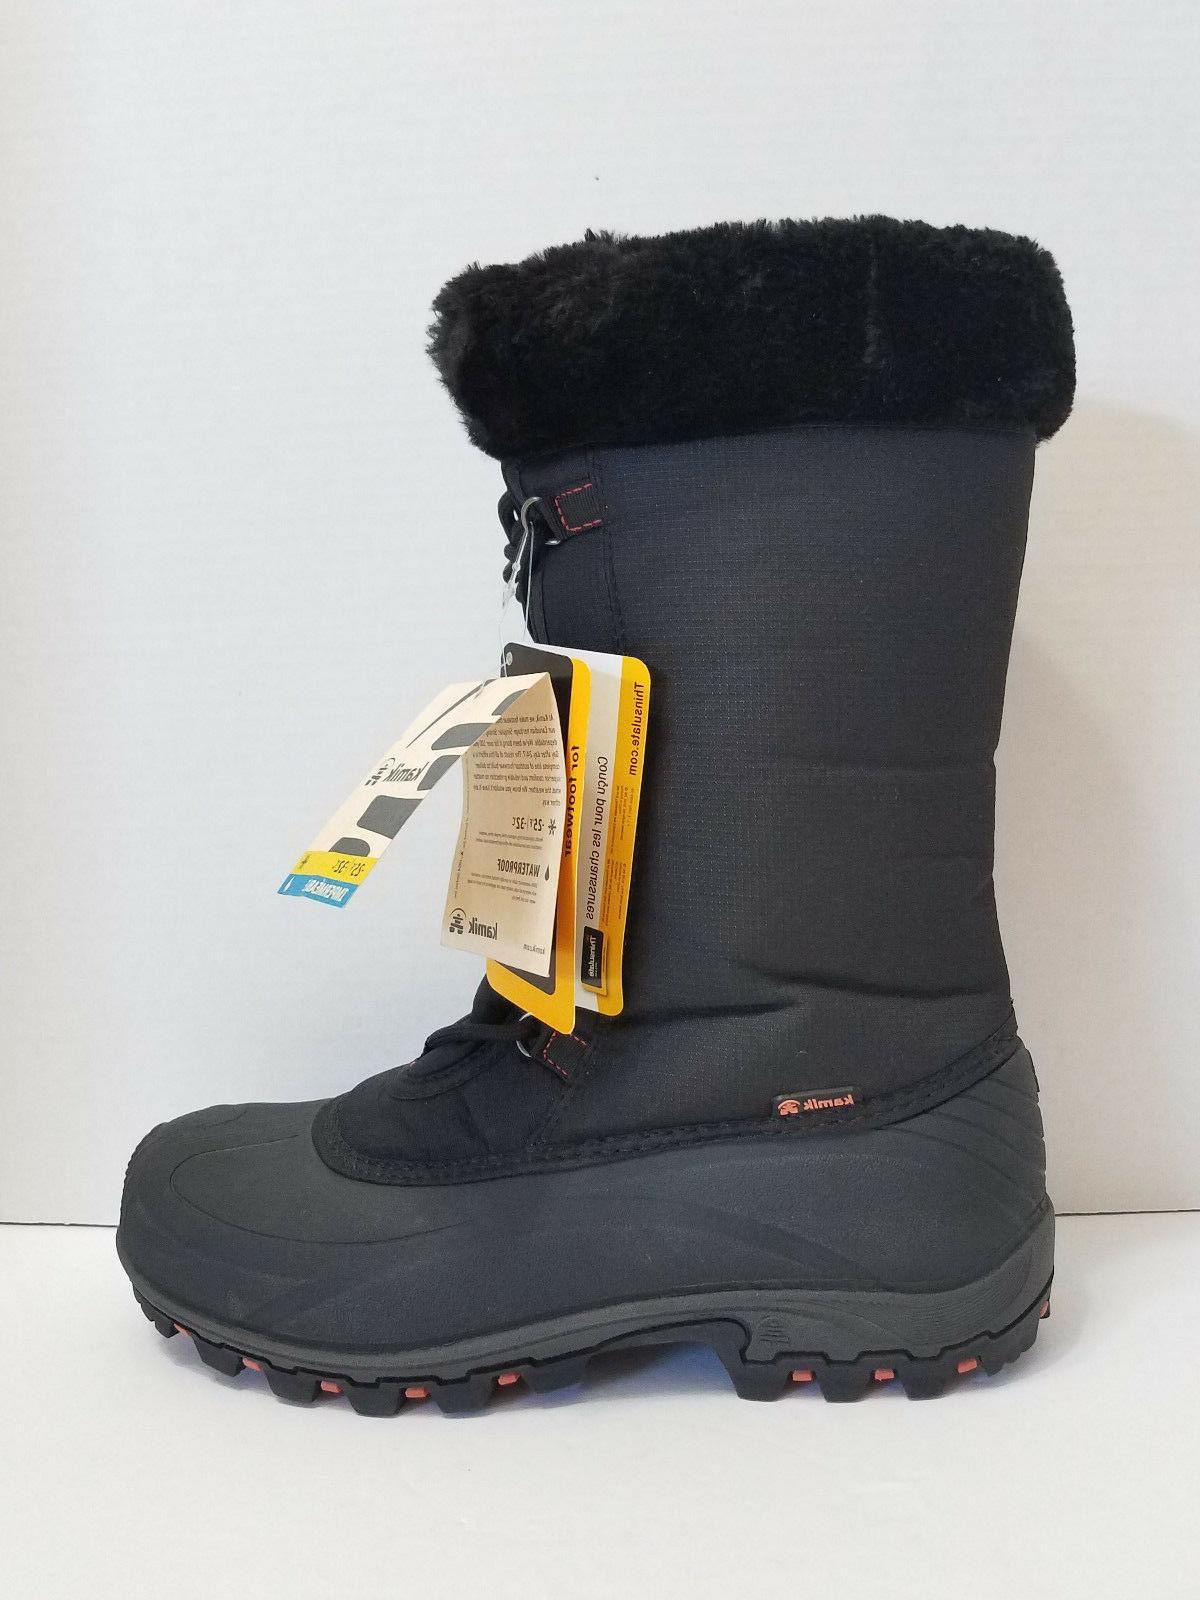 rival womens winter snow boot thinsulate impermeable